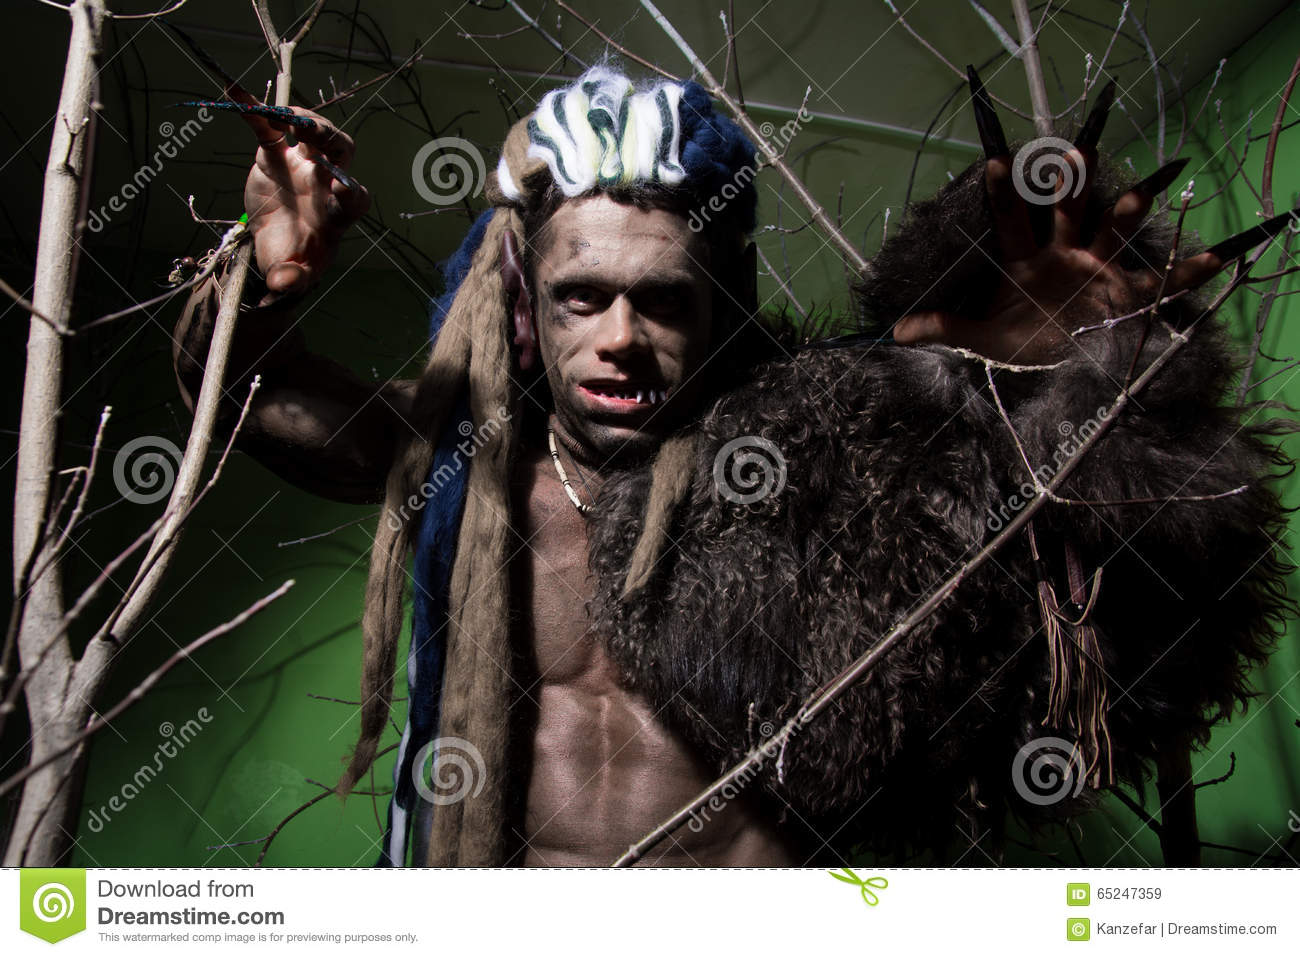 Werewolf with long nails and crooked teeth among the branches of